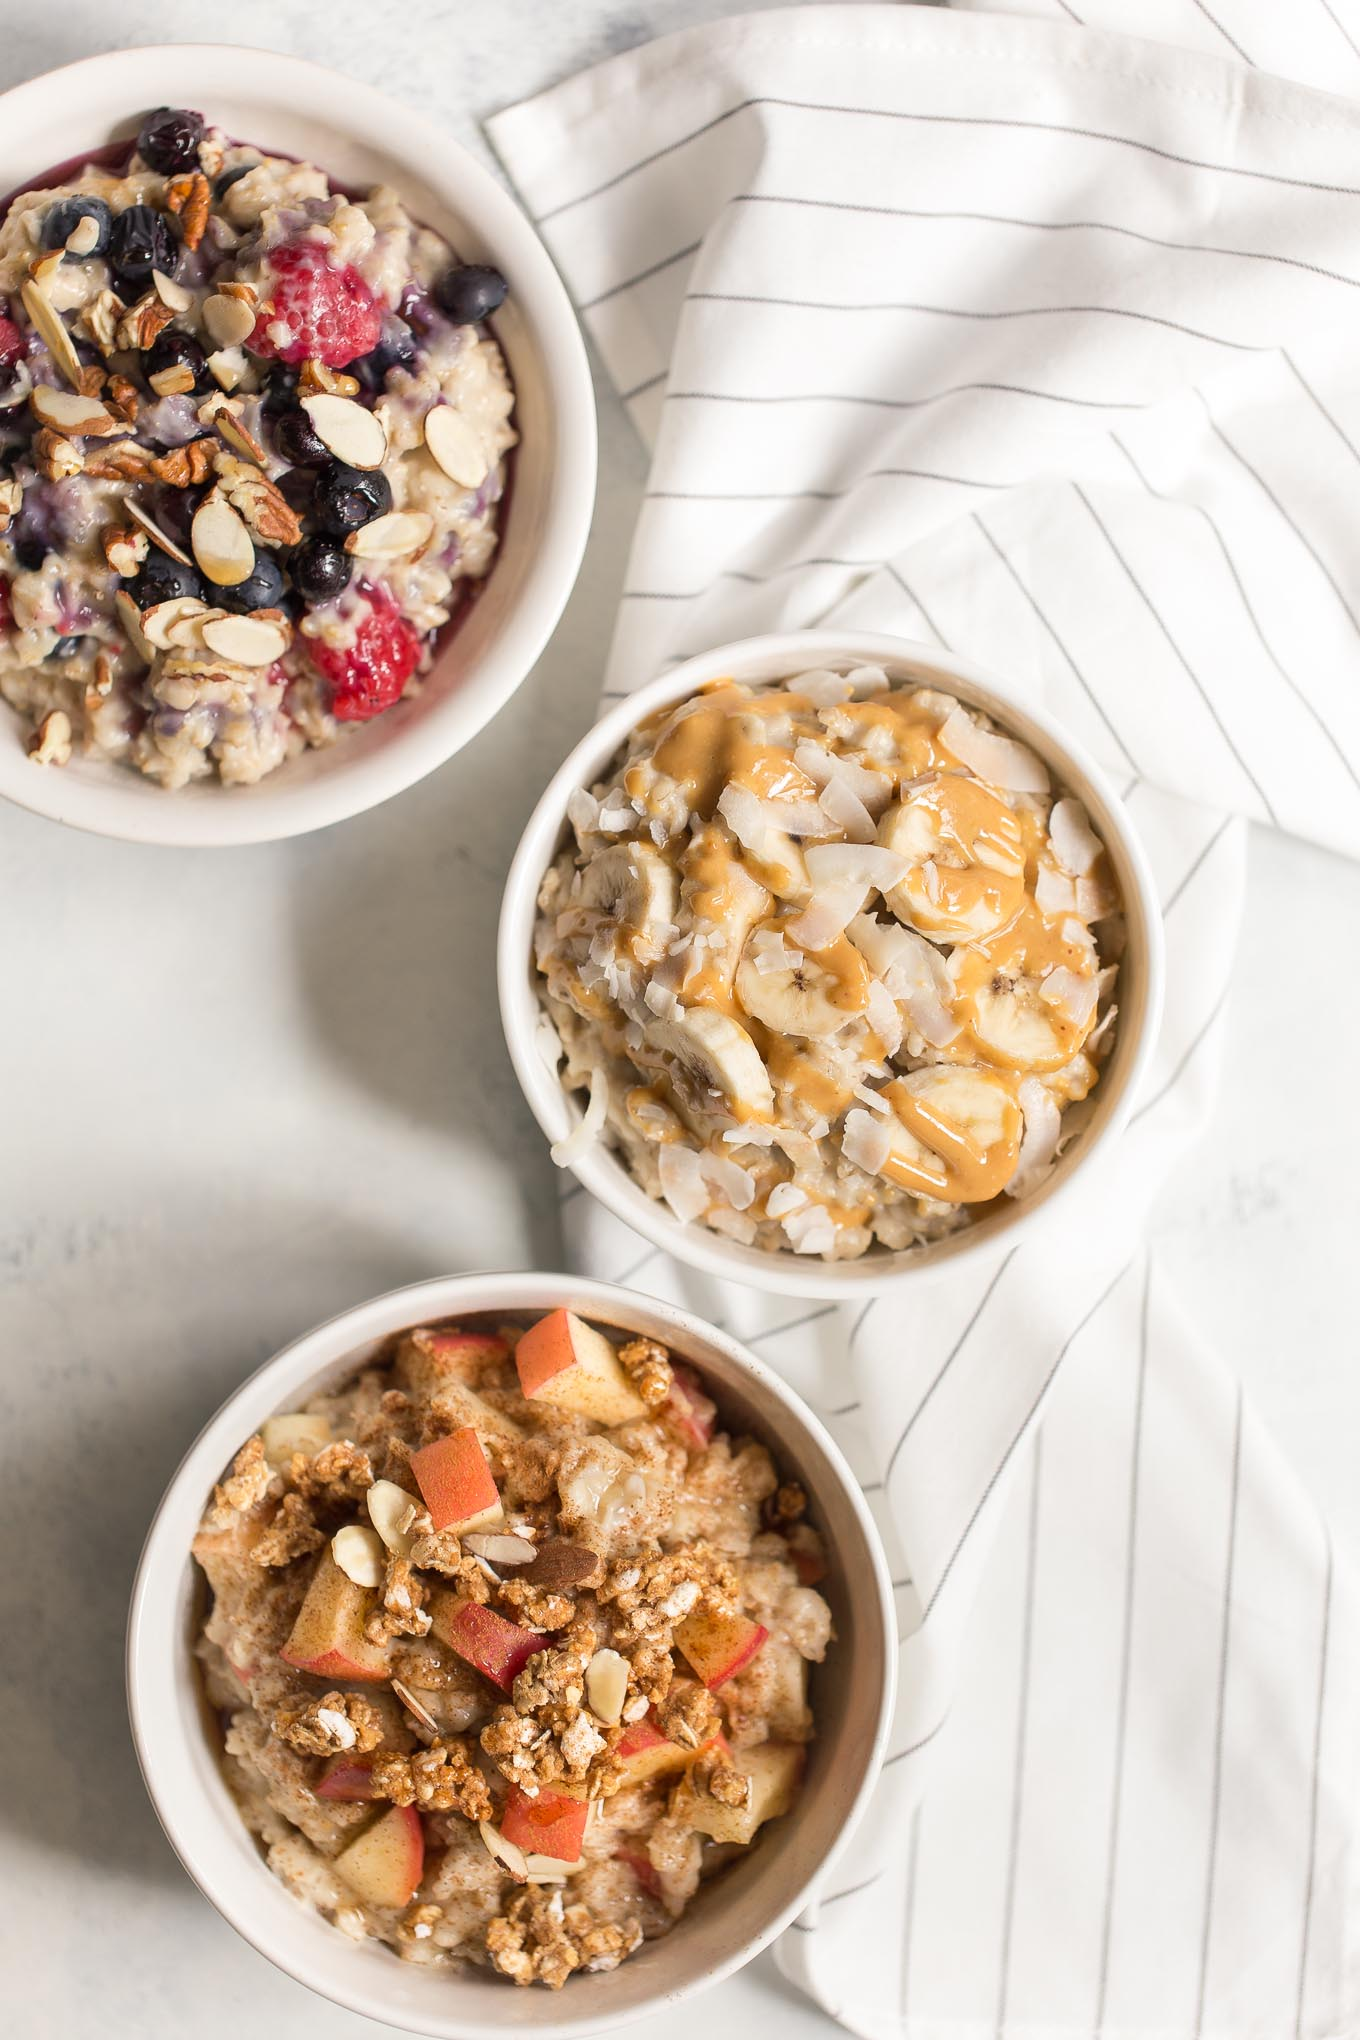 Slow Cooker Oatmeal 3 Ways